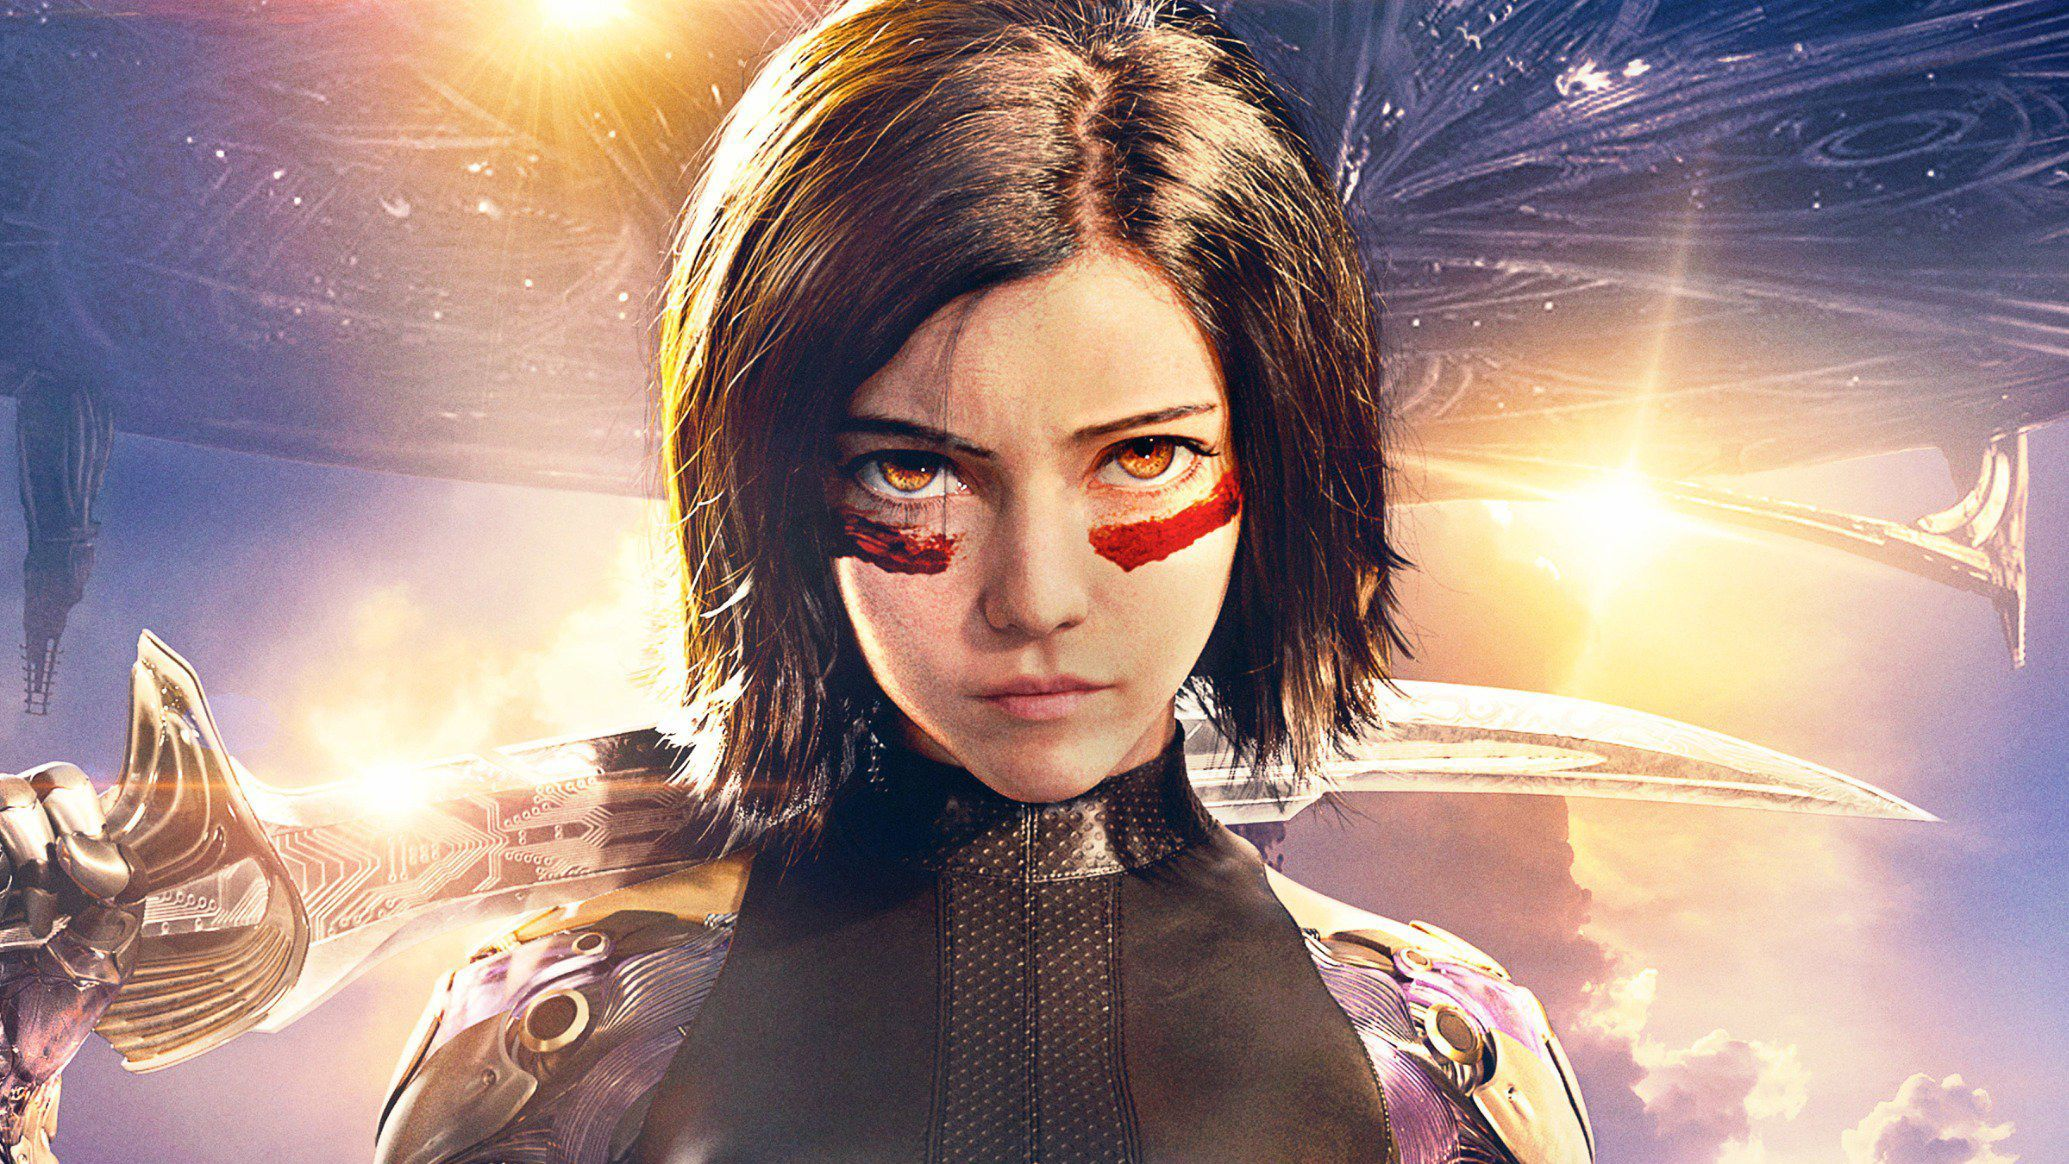 Download Alita Battle Angel 4k 2019 Movies Movies Hd Wallpapers With Id 91 And Find 4900 Other Background Wallpa Angel Wallpaper Alita Movie Battle Angel Alita